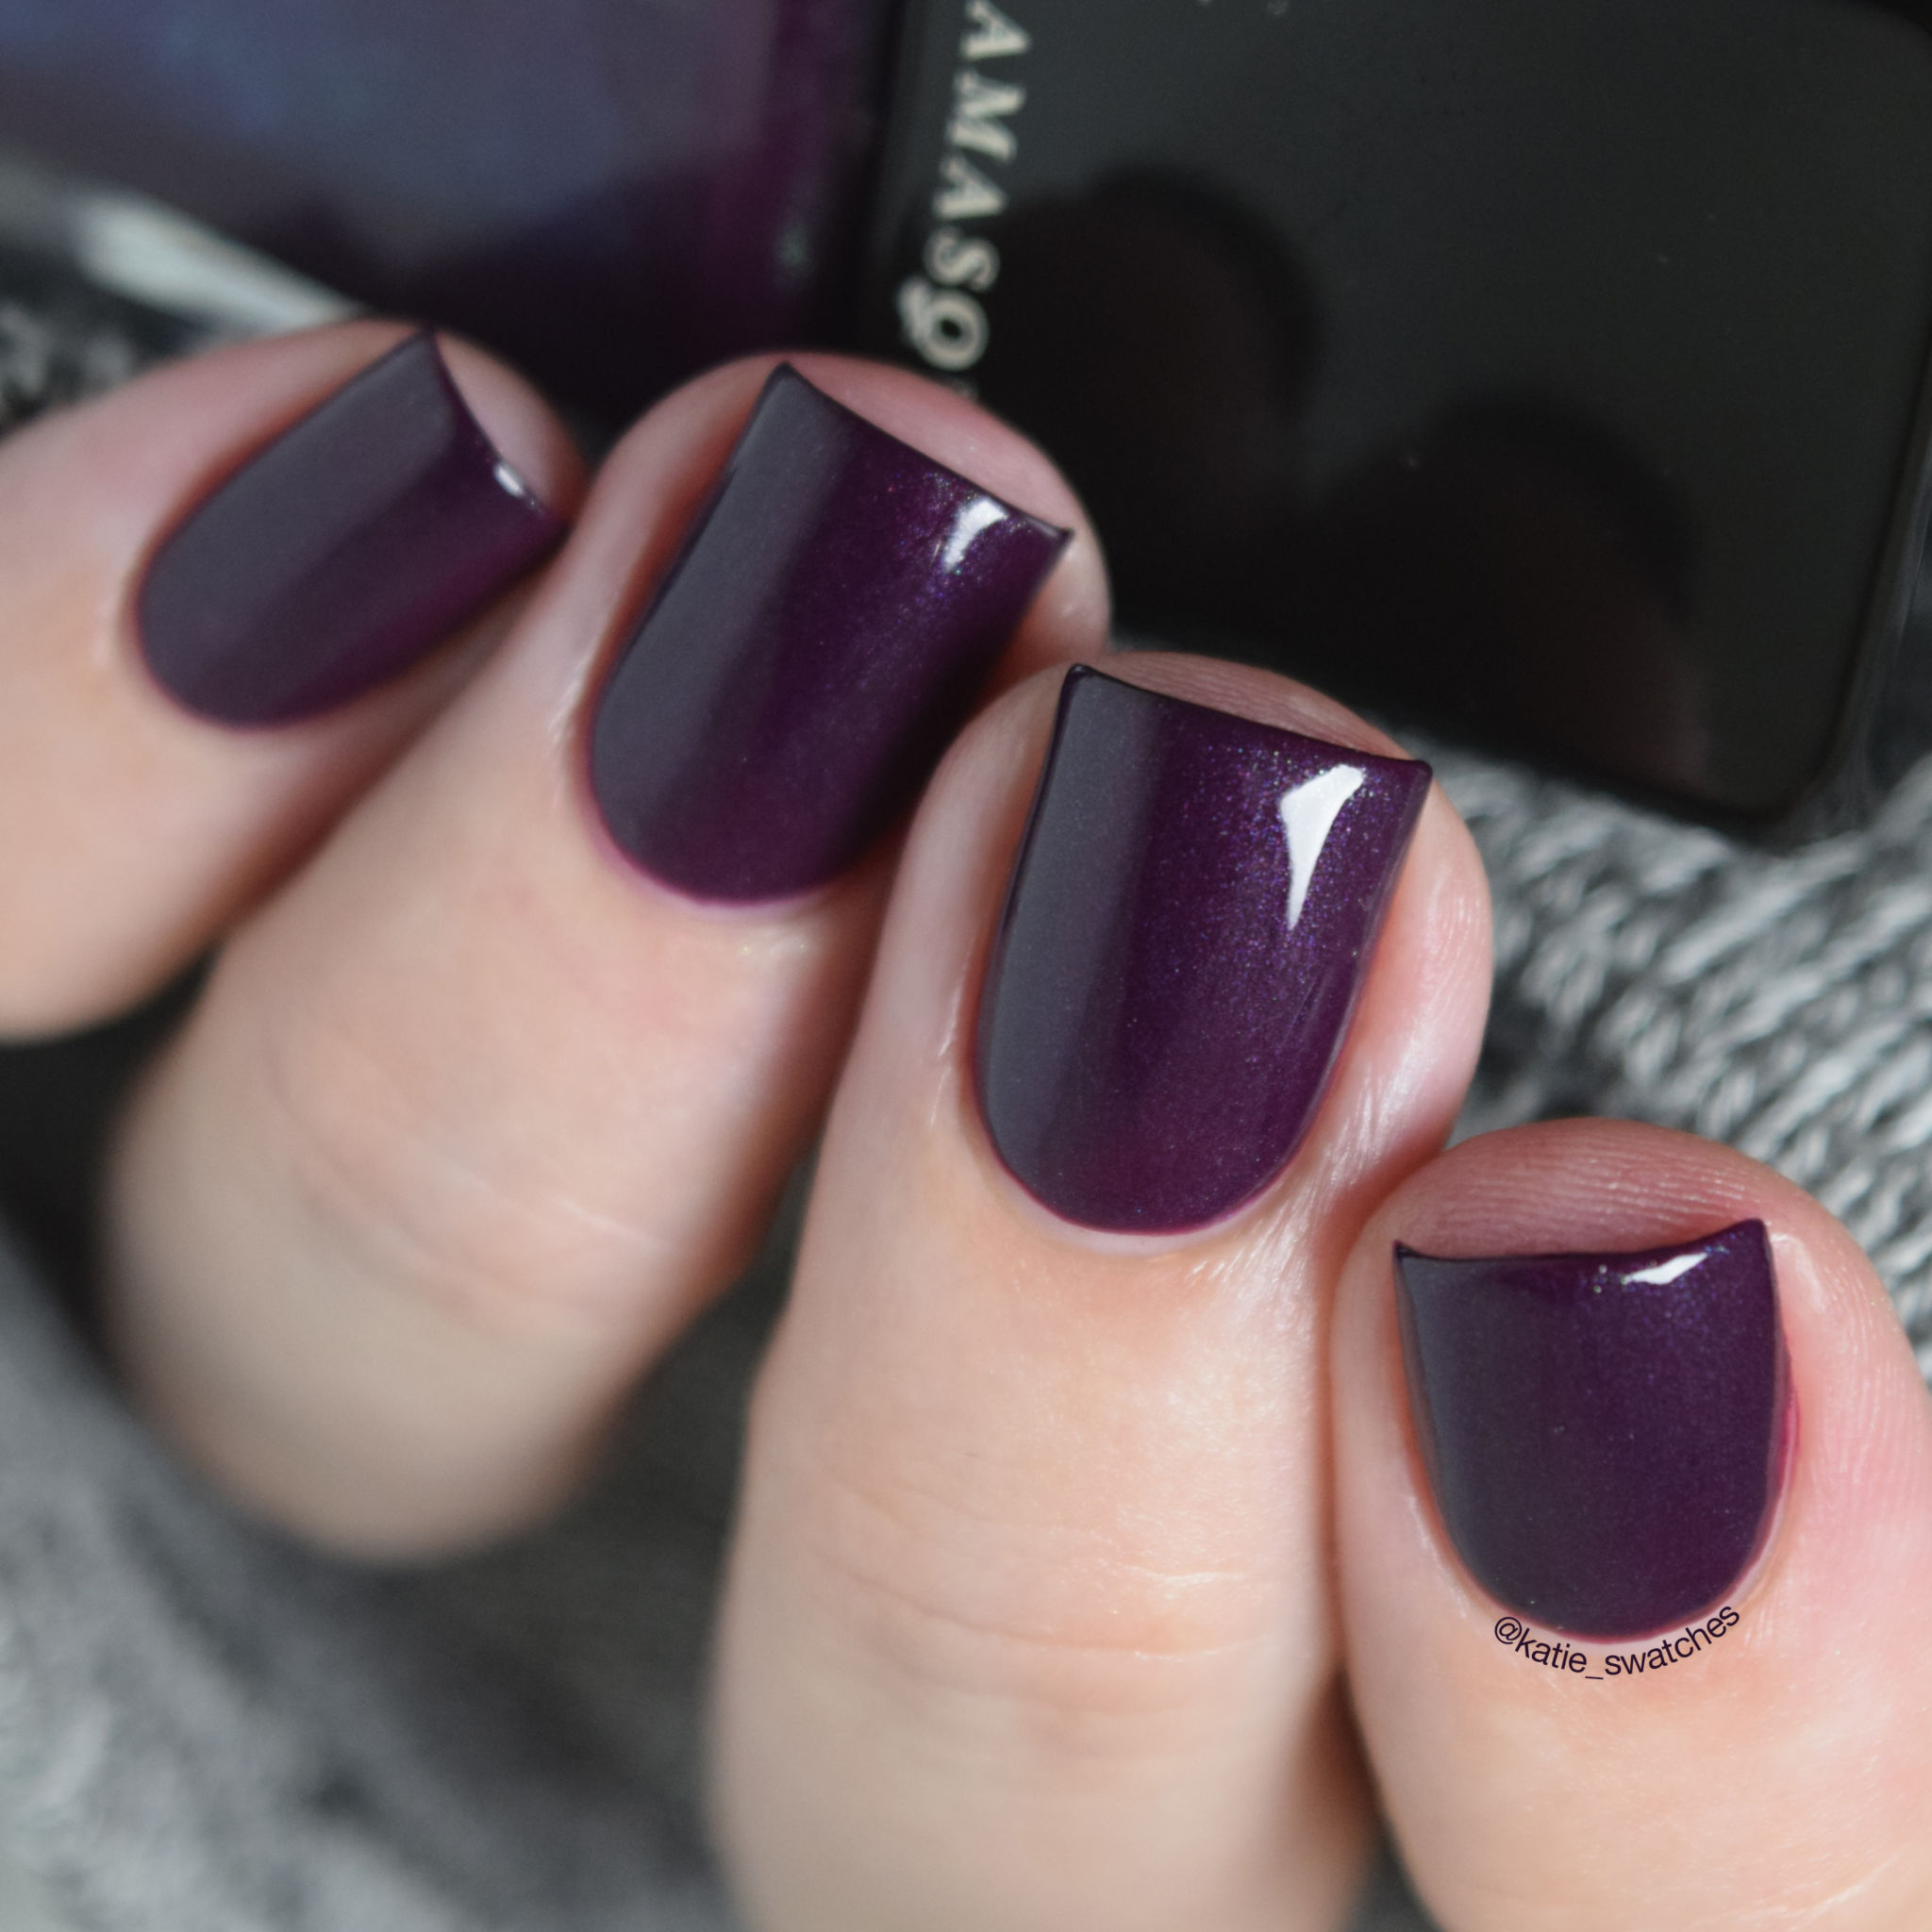 Illamasqua Gothiqua nail polish swatch - dark purple